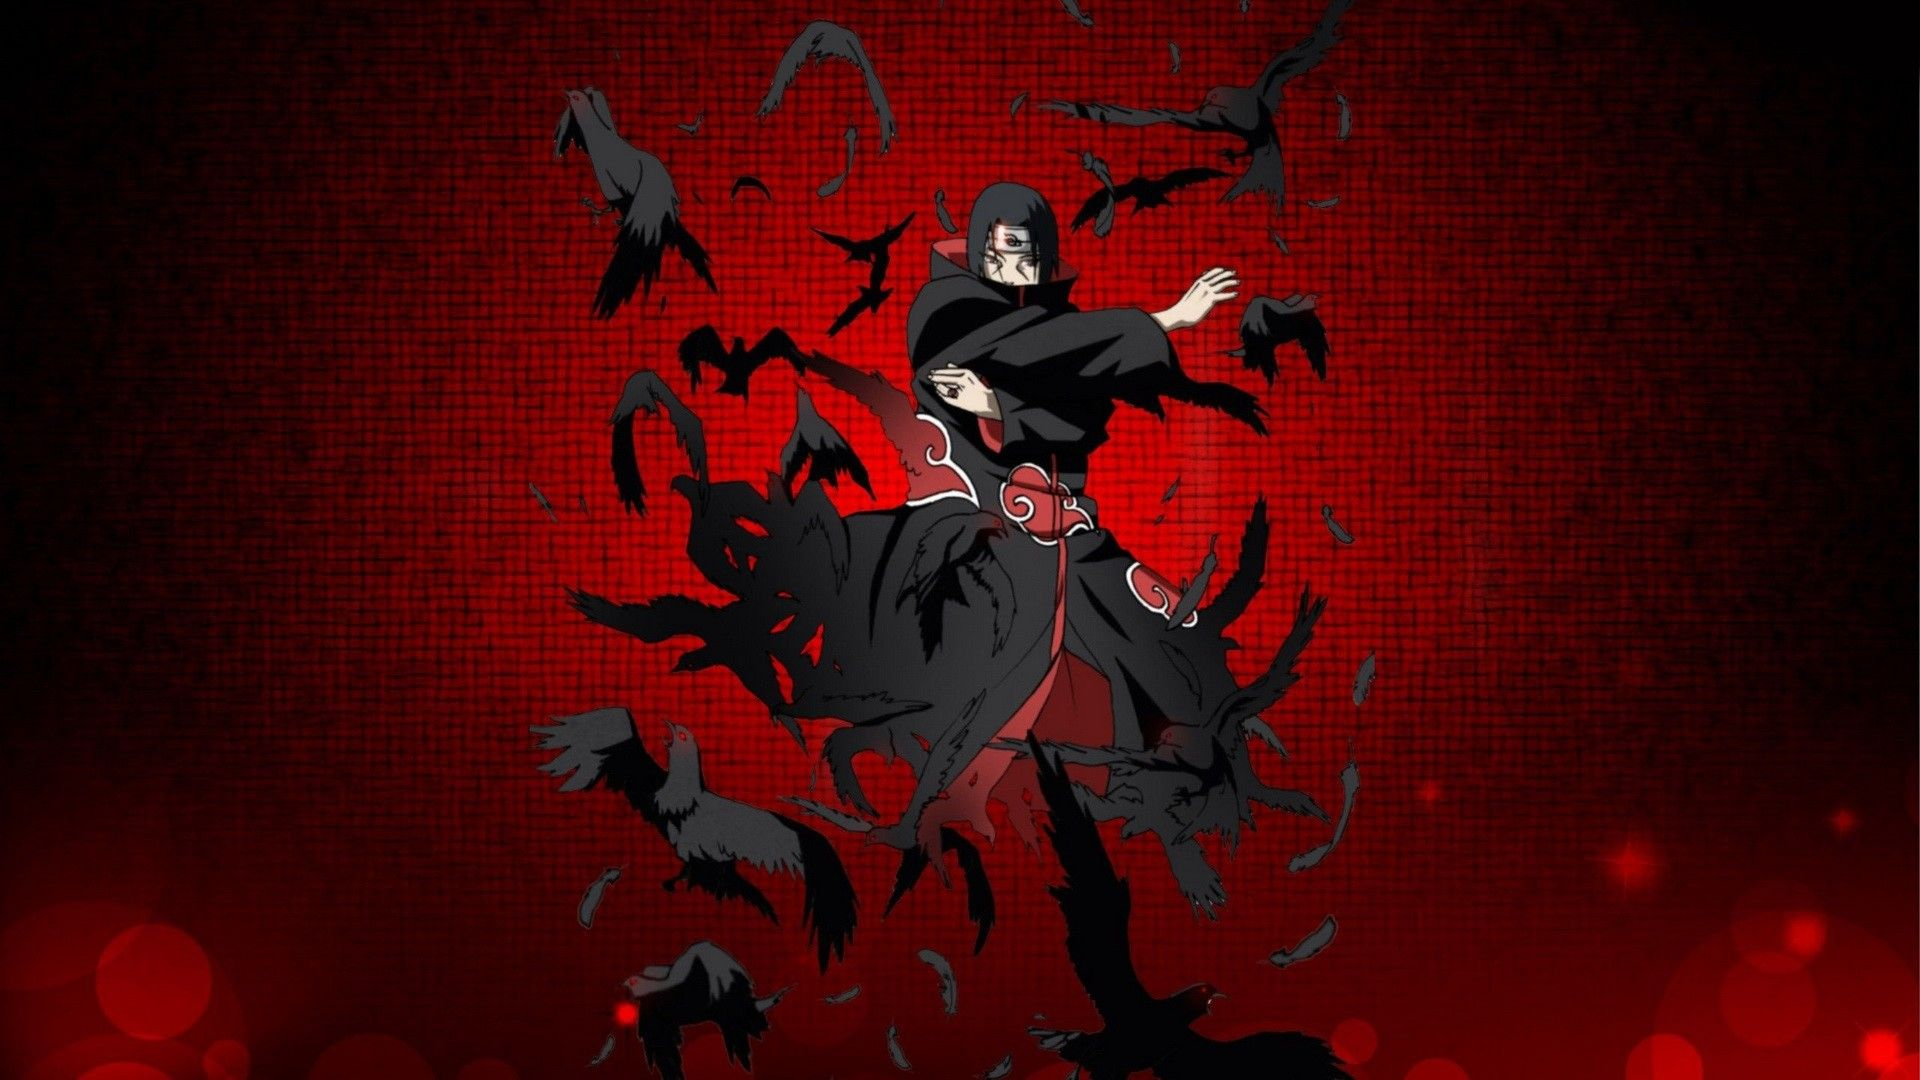 Wallpaper Naruto Shippuden In 2020 Wallpaper Naruto Shippuden Naruto Wallpaper Naruto Wallpaper Iphone